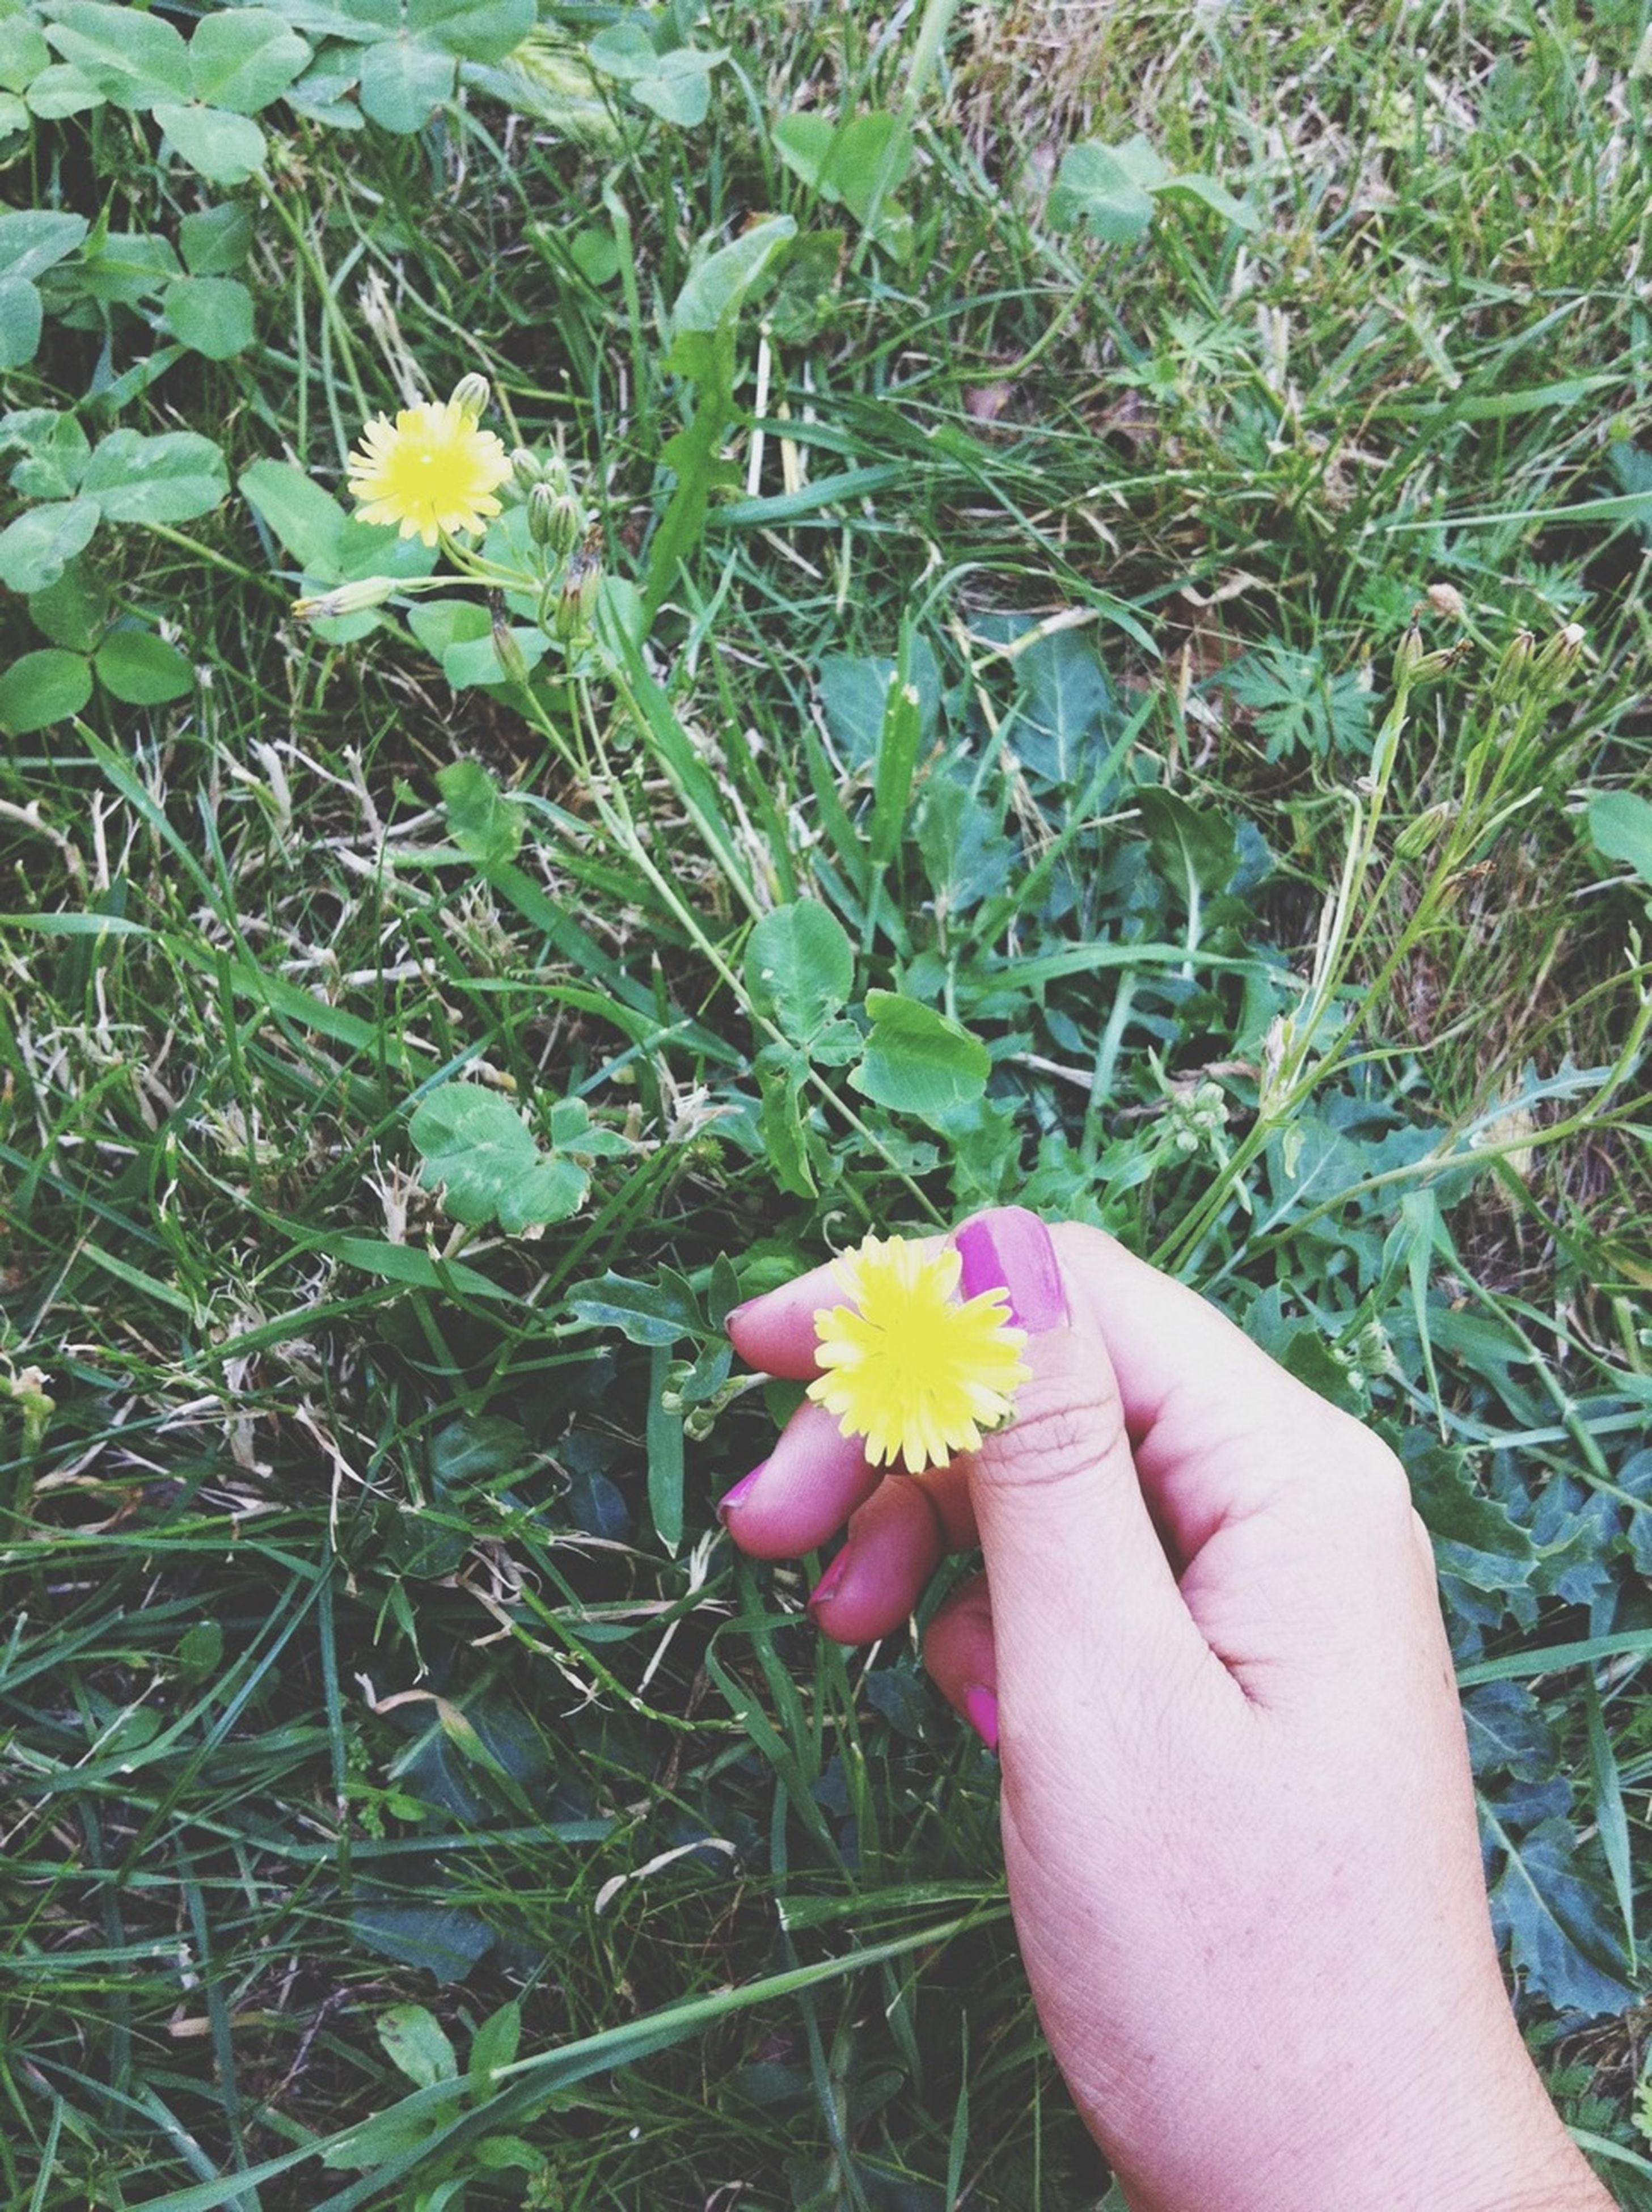 flower, petal, fragility, person, freshness, flower head, holding, part of, single flower, grass, field, personal perspective, growth, high angle view, cropped, unrecognizable person, close-up